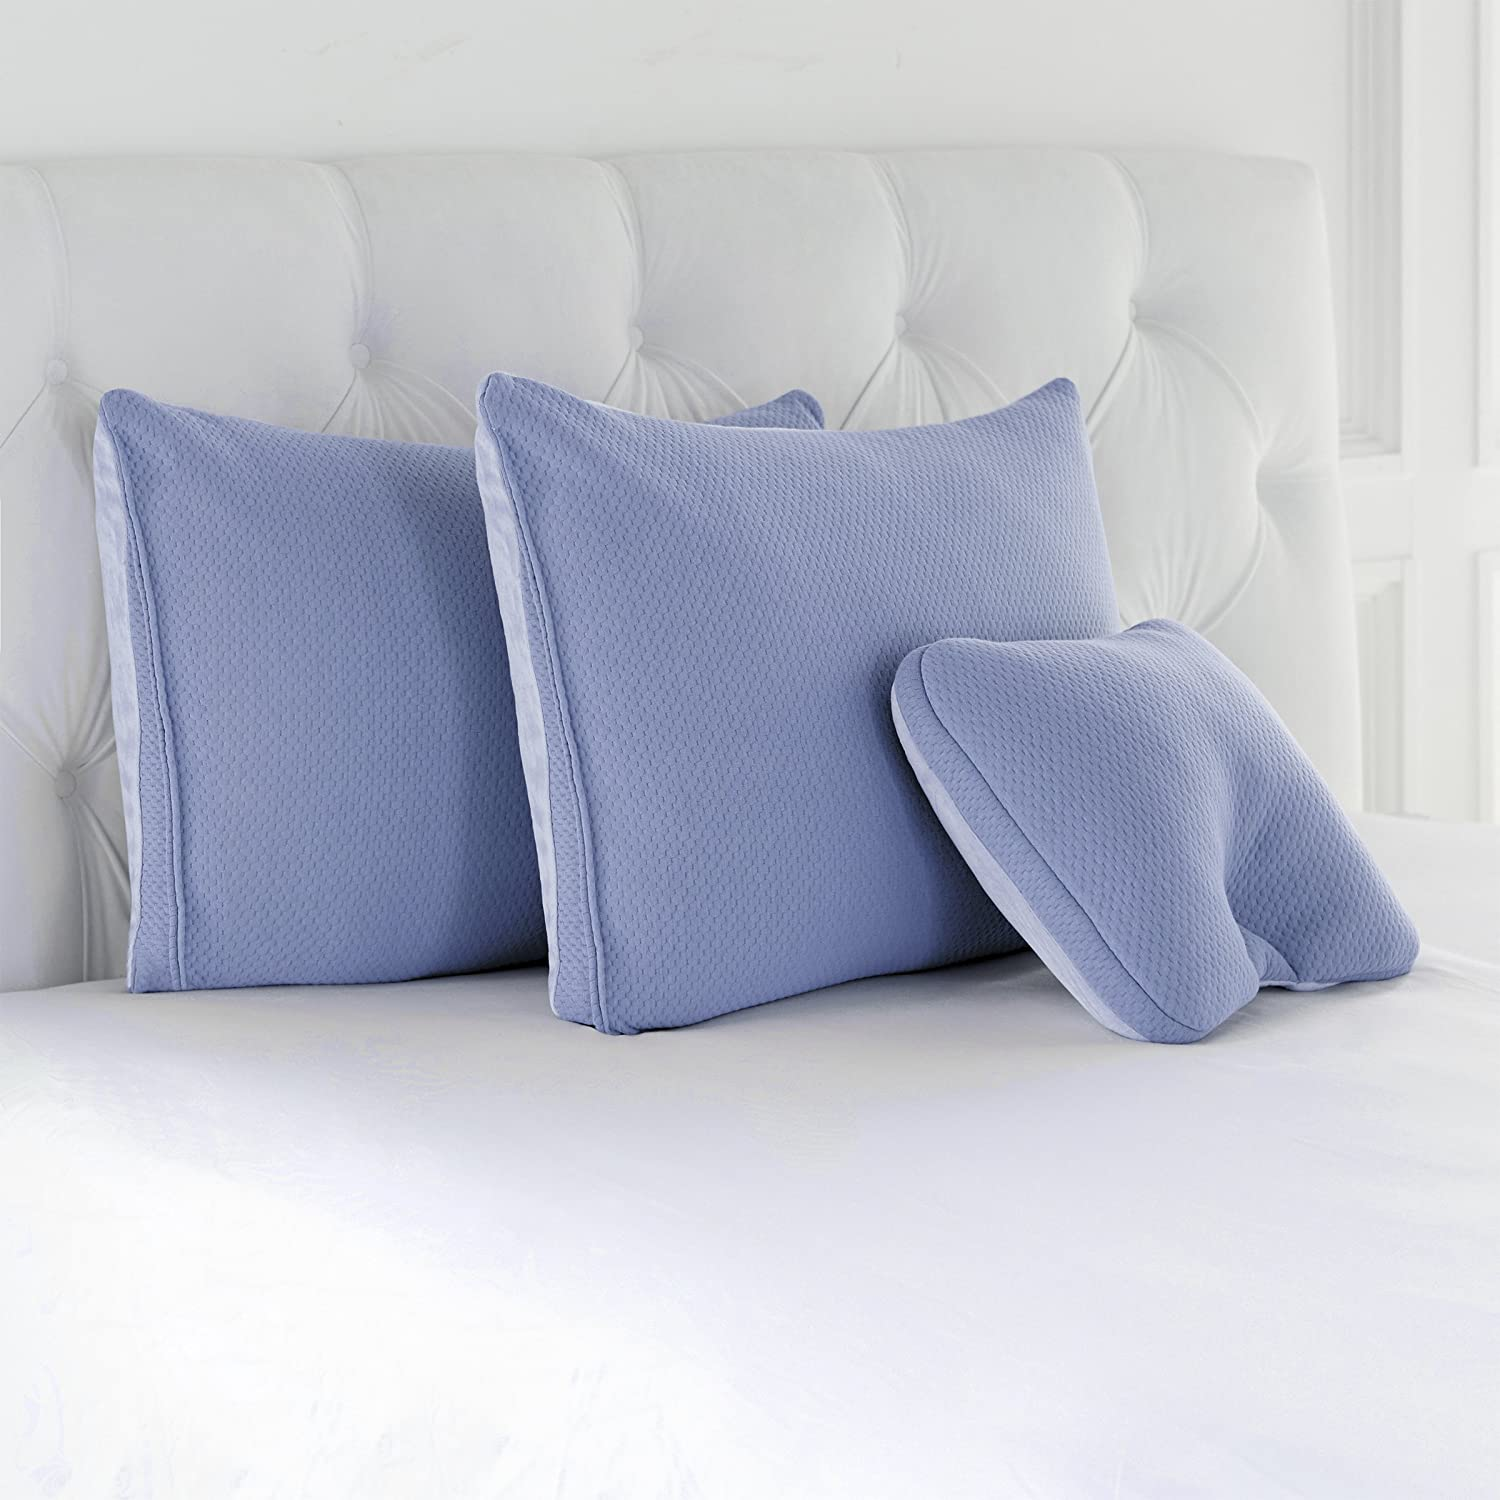 Joy Mangano Set of Three Pillows